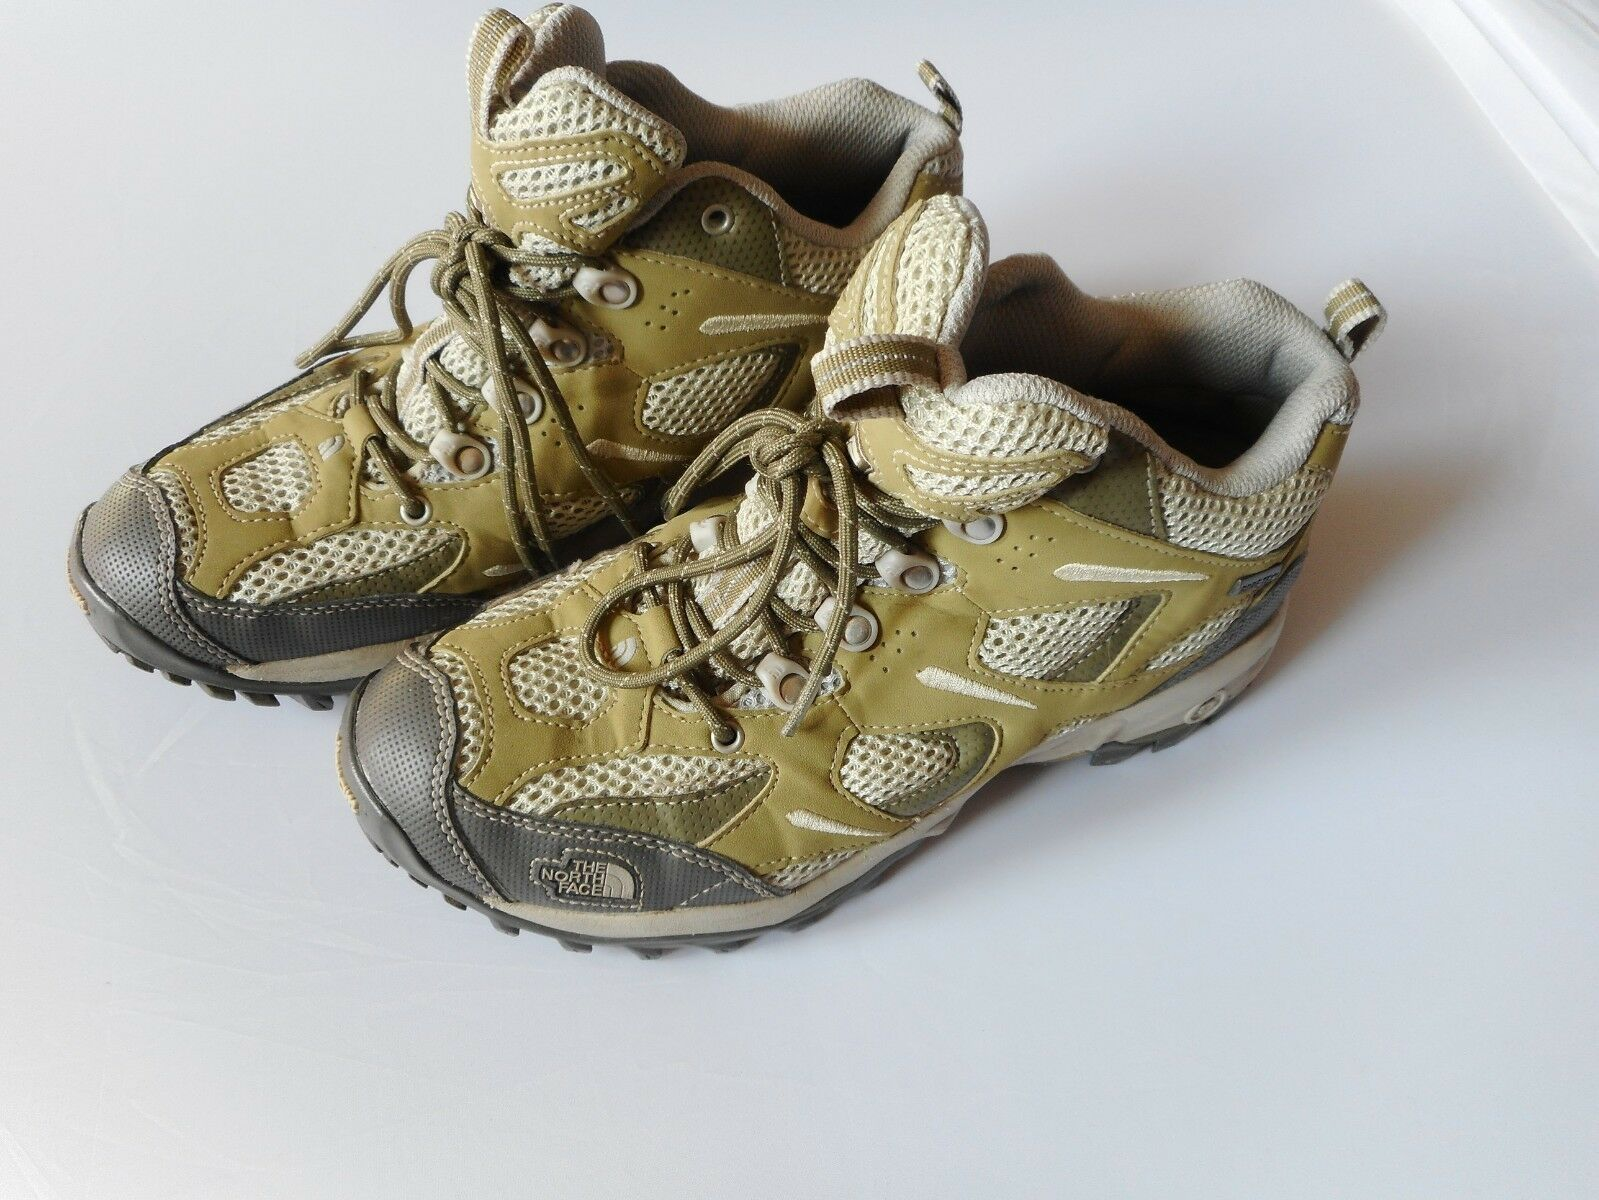 THE THE THE  NORTH  FACE  Womens Shoes  Gore -Tex  SIze  -  UK -5  ,EUR-37,5  USED 441298